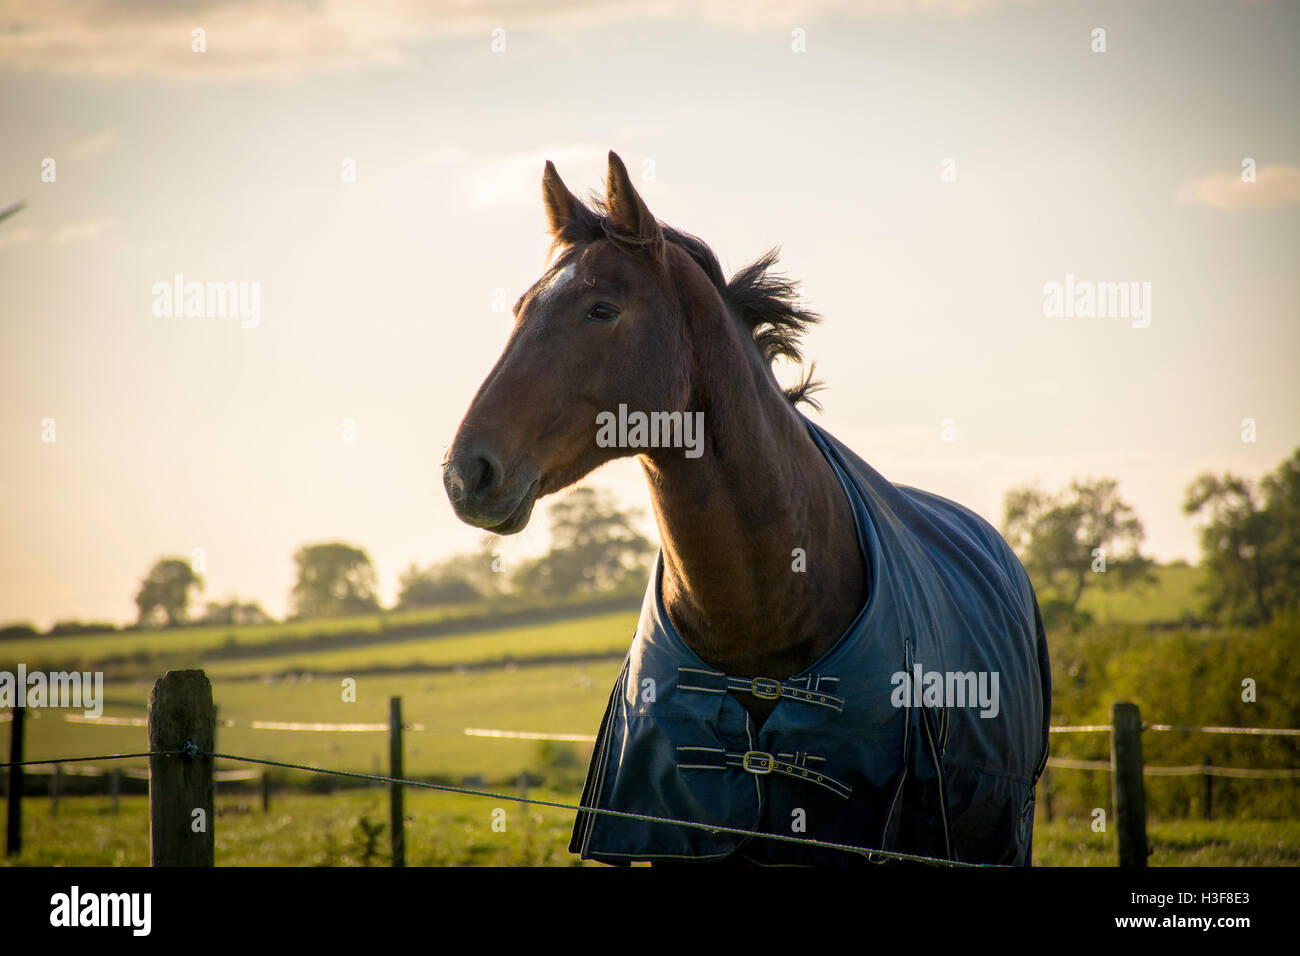 bay horse wearing blue rug - Stock Image